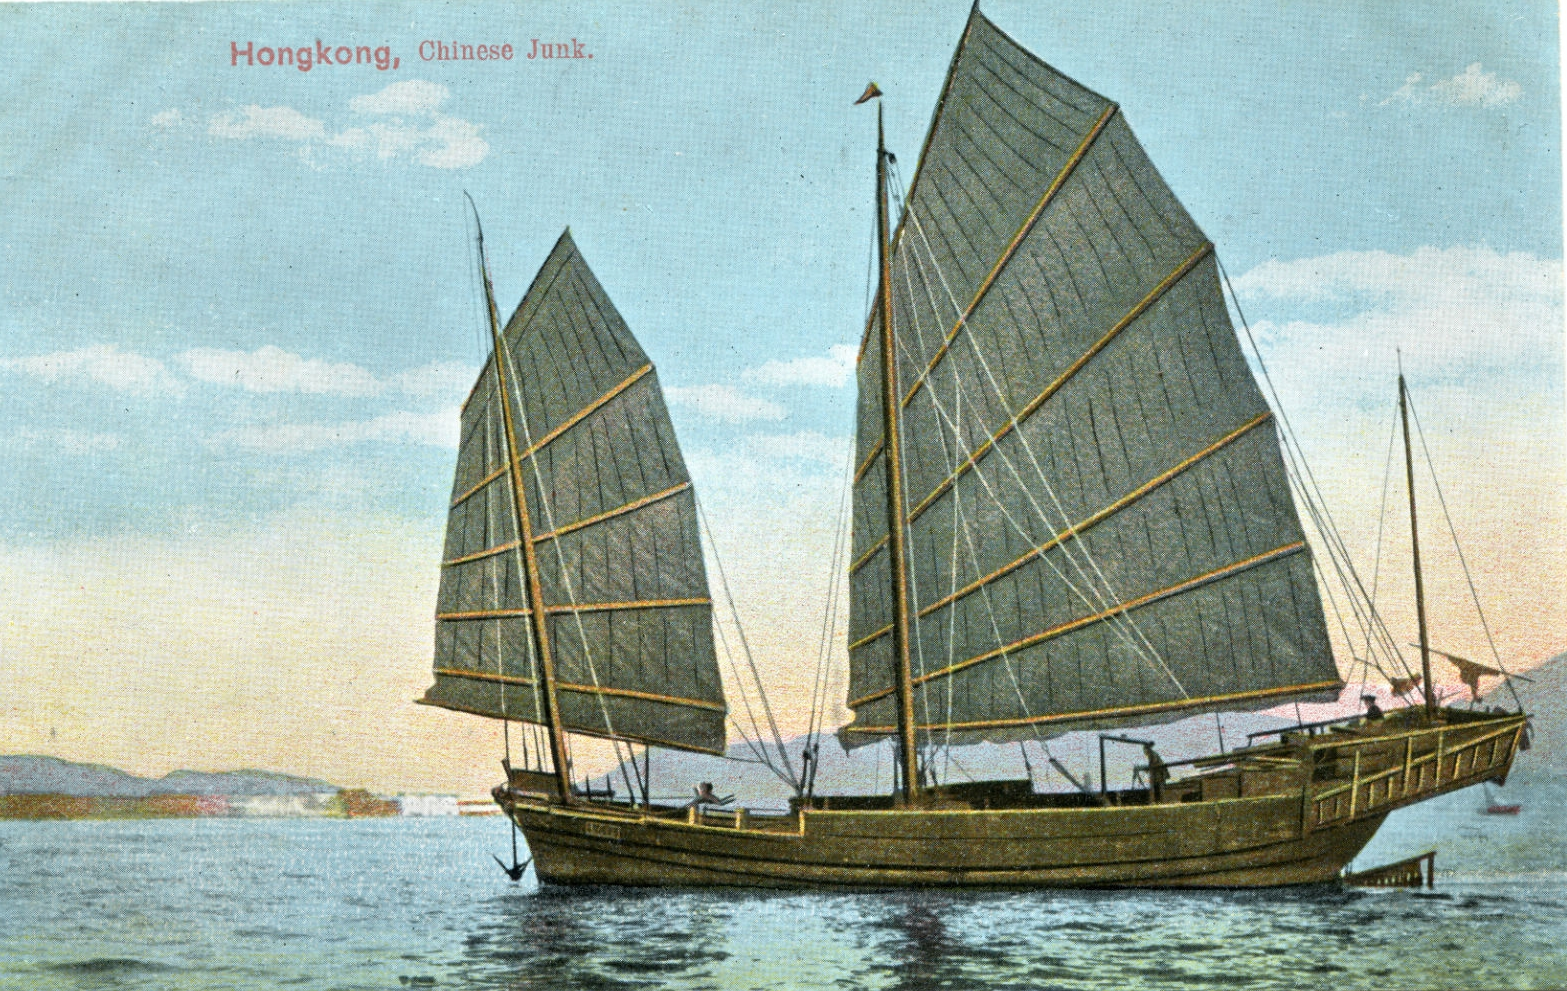 Postcard showing a junk in Hong Kong harbor.